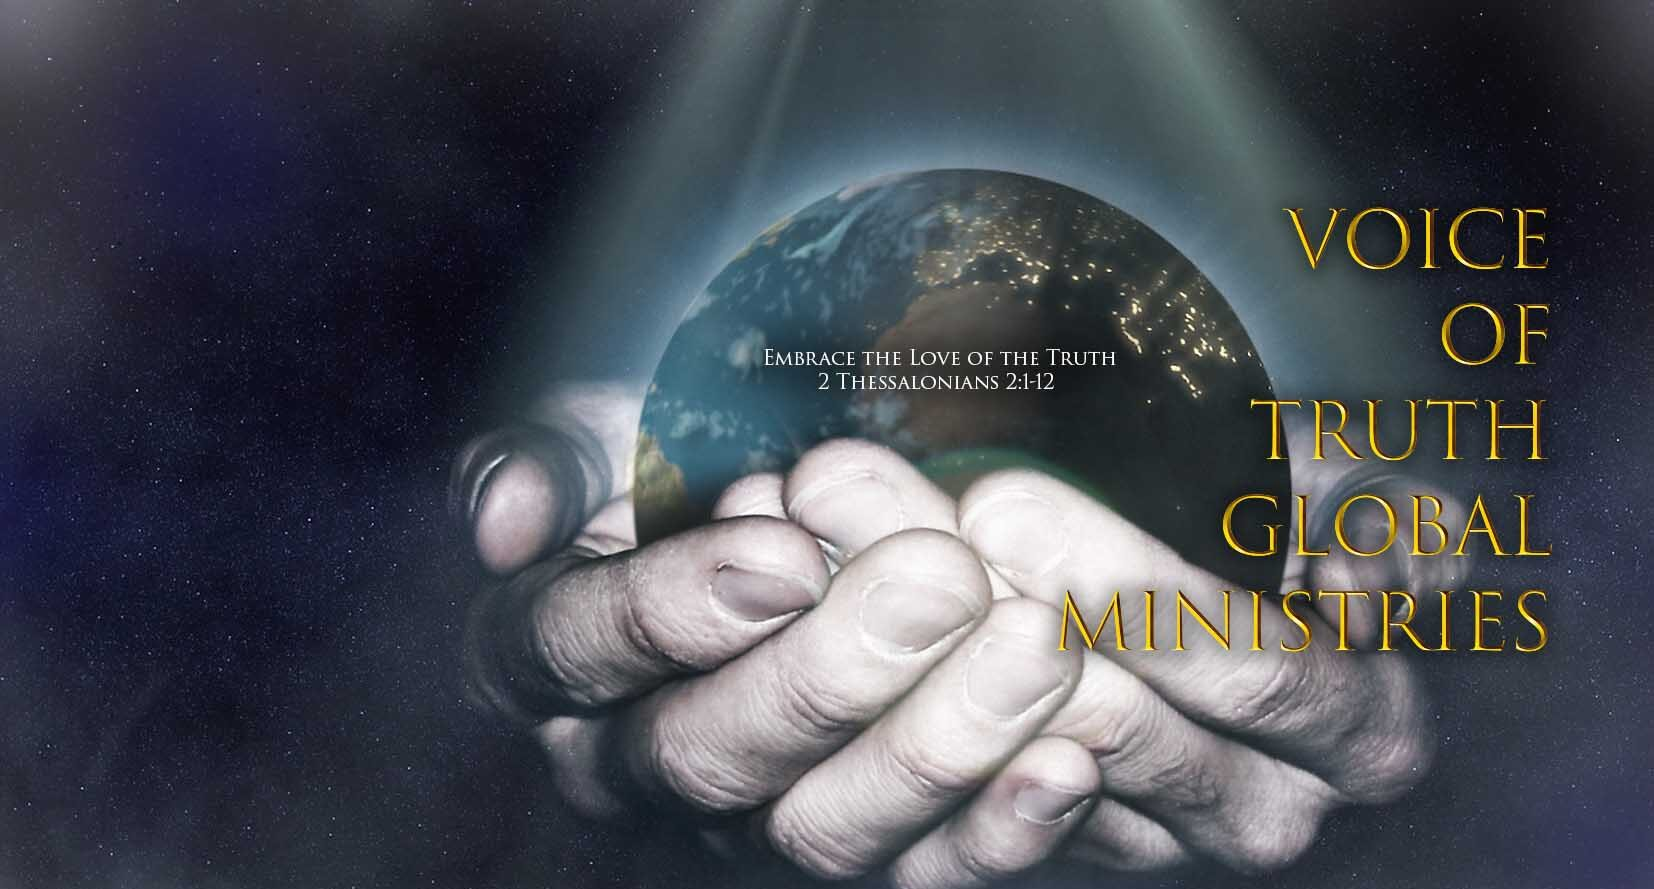 Voice of Truth Global Ministries